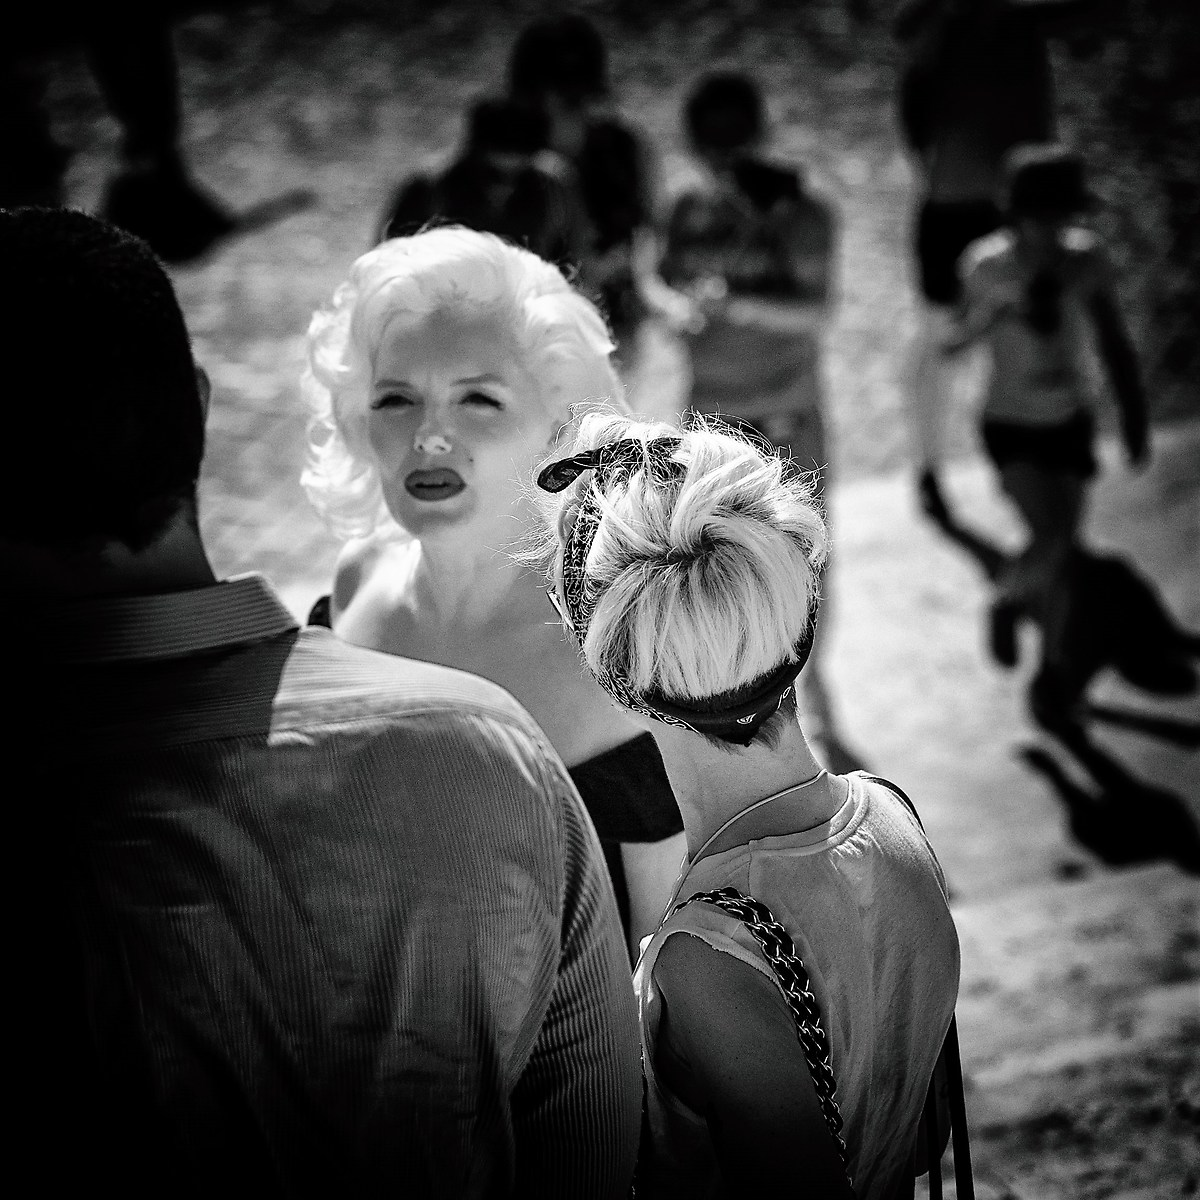 And in the crowd I see your face Marilyn ......